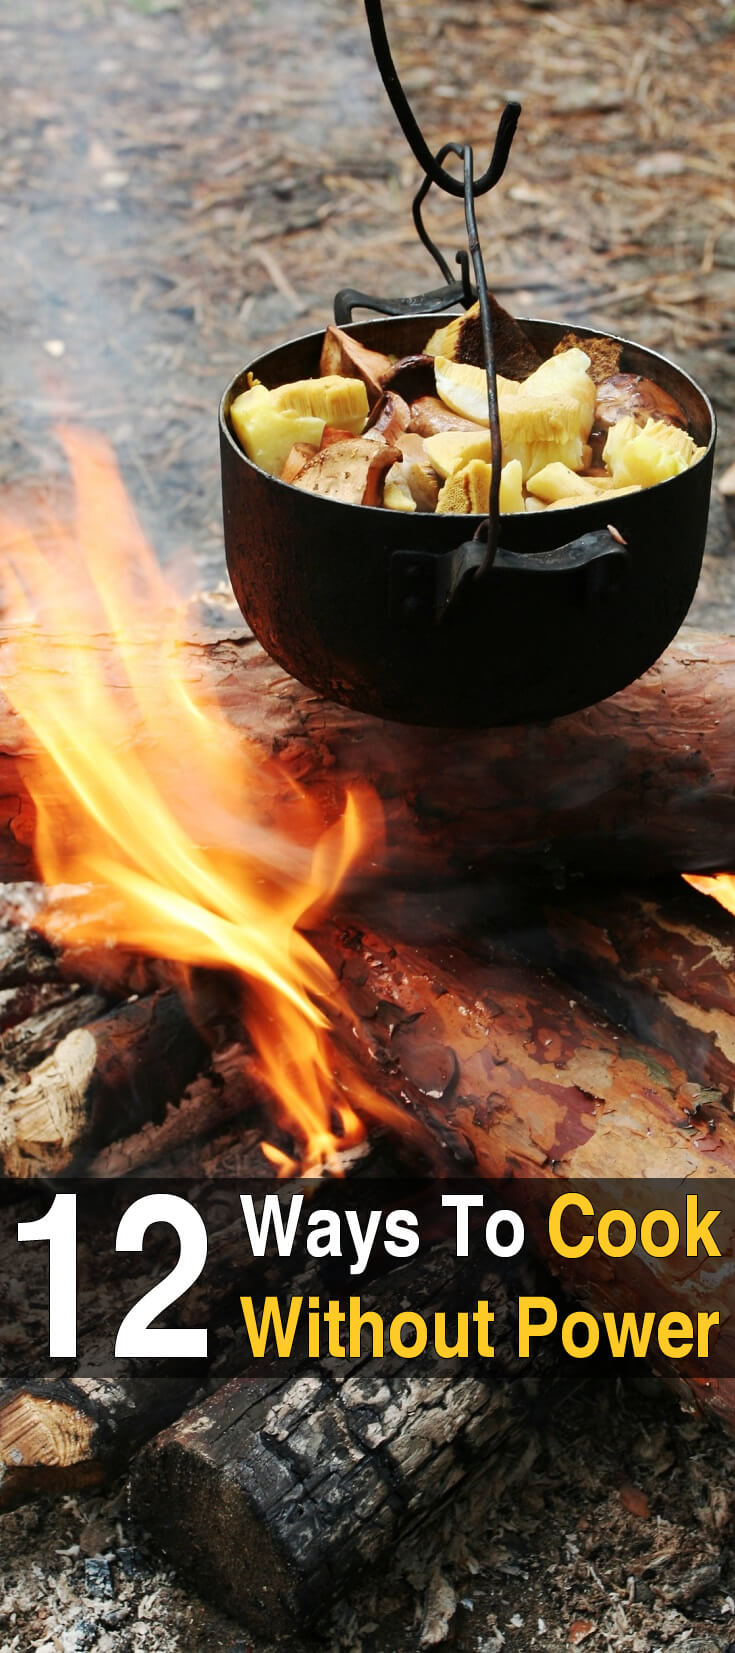 12 Ways To Cook Without Power